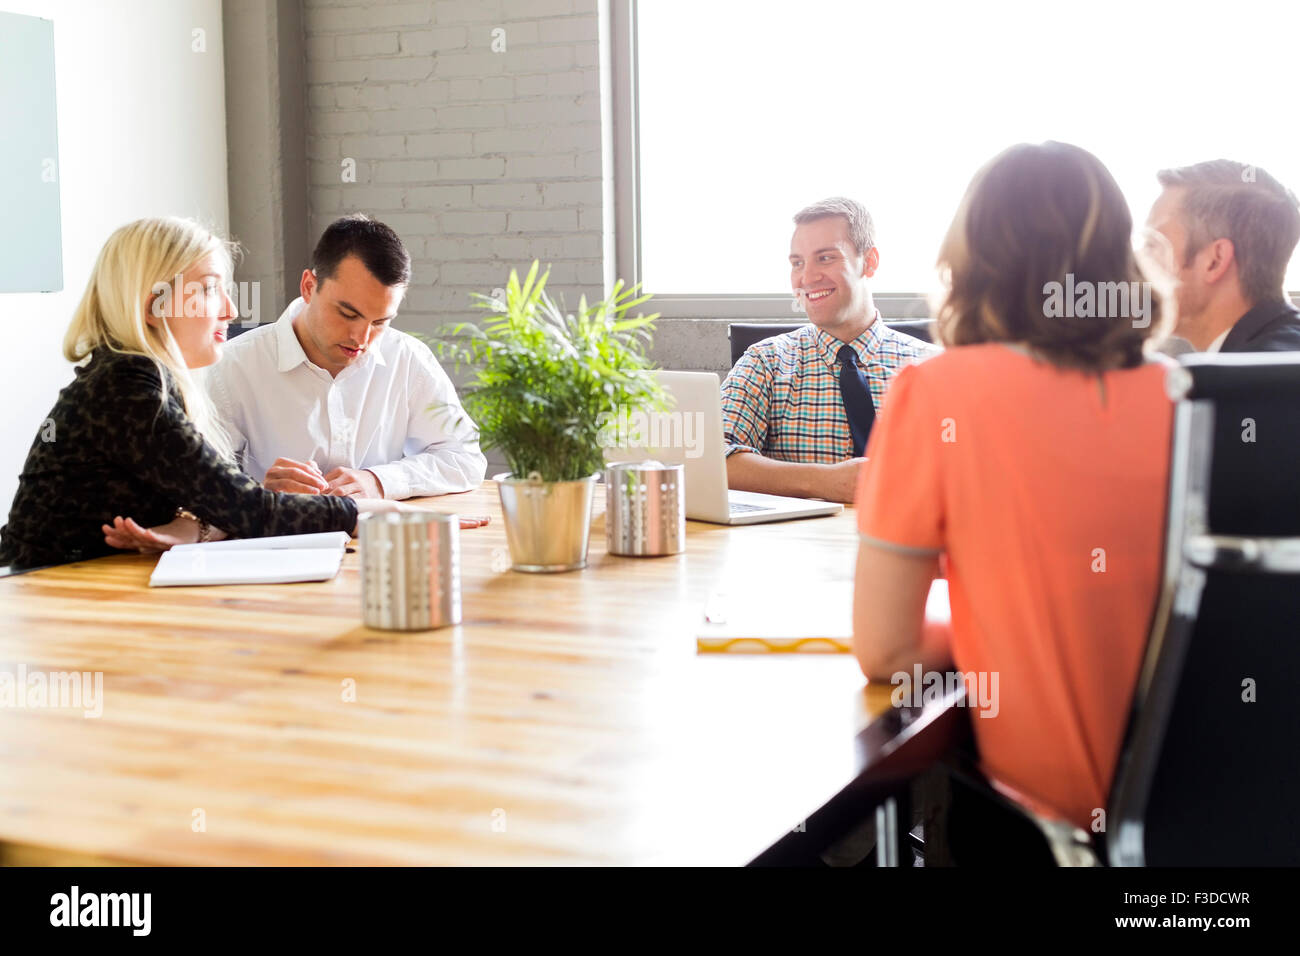 Five office workers during meeting - Stock Image